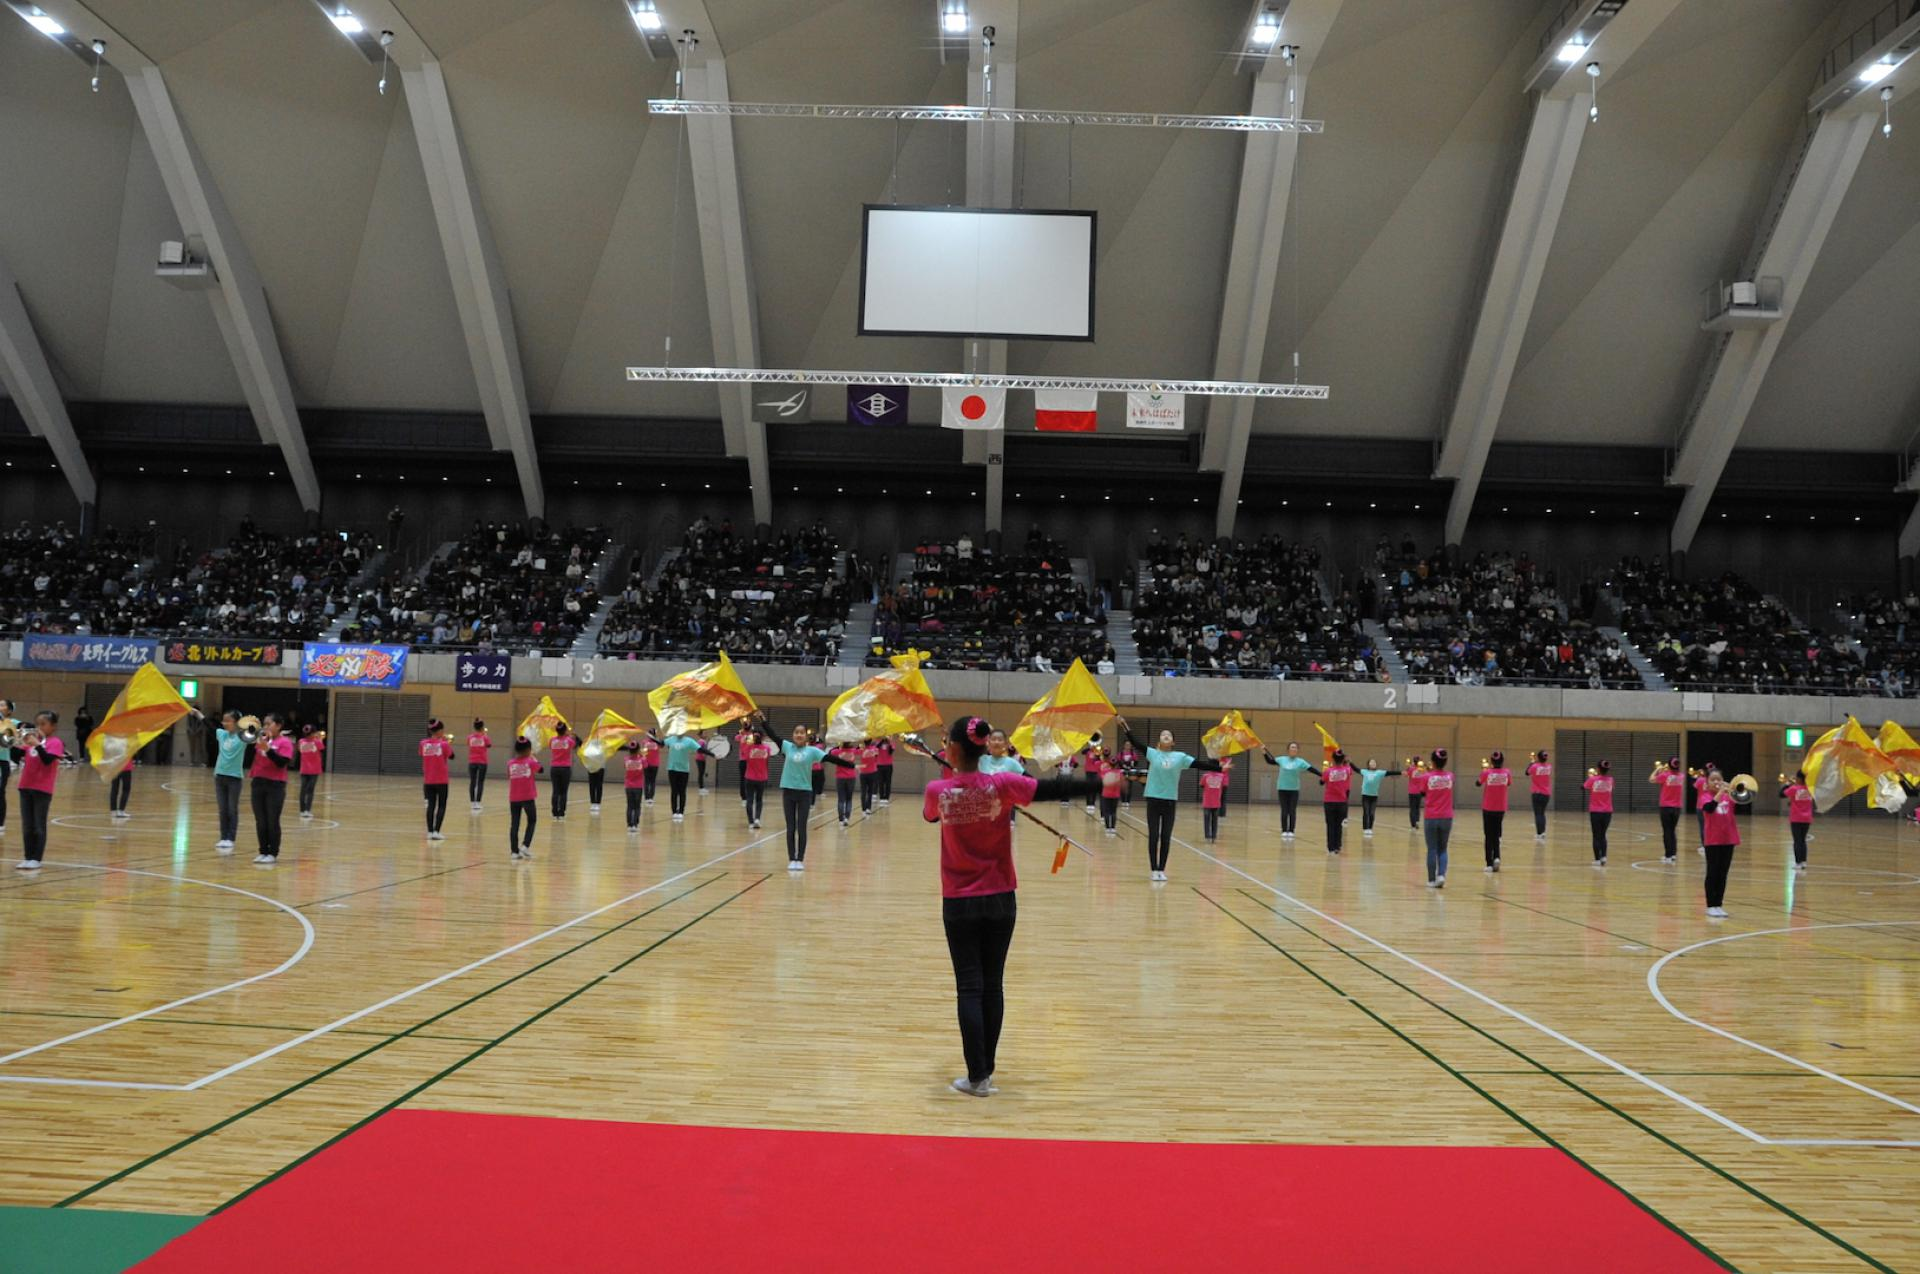 Takasaki Arena Opening Ceremony<br />Performed by<br />The Takasaki Technical Leaders Marching Band 1